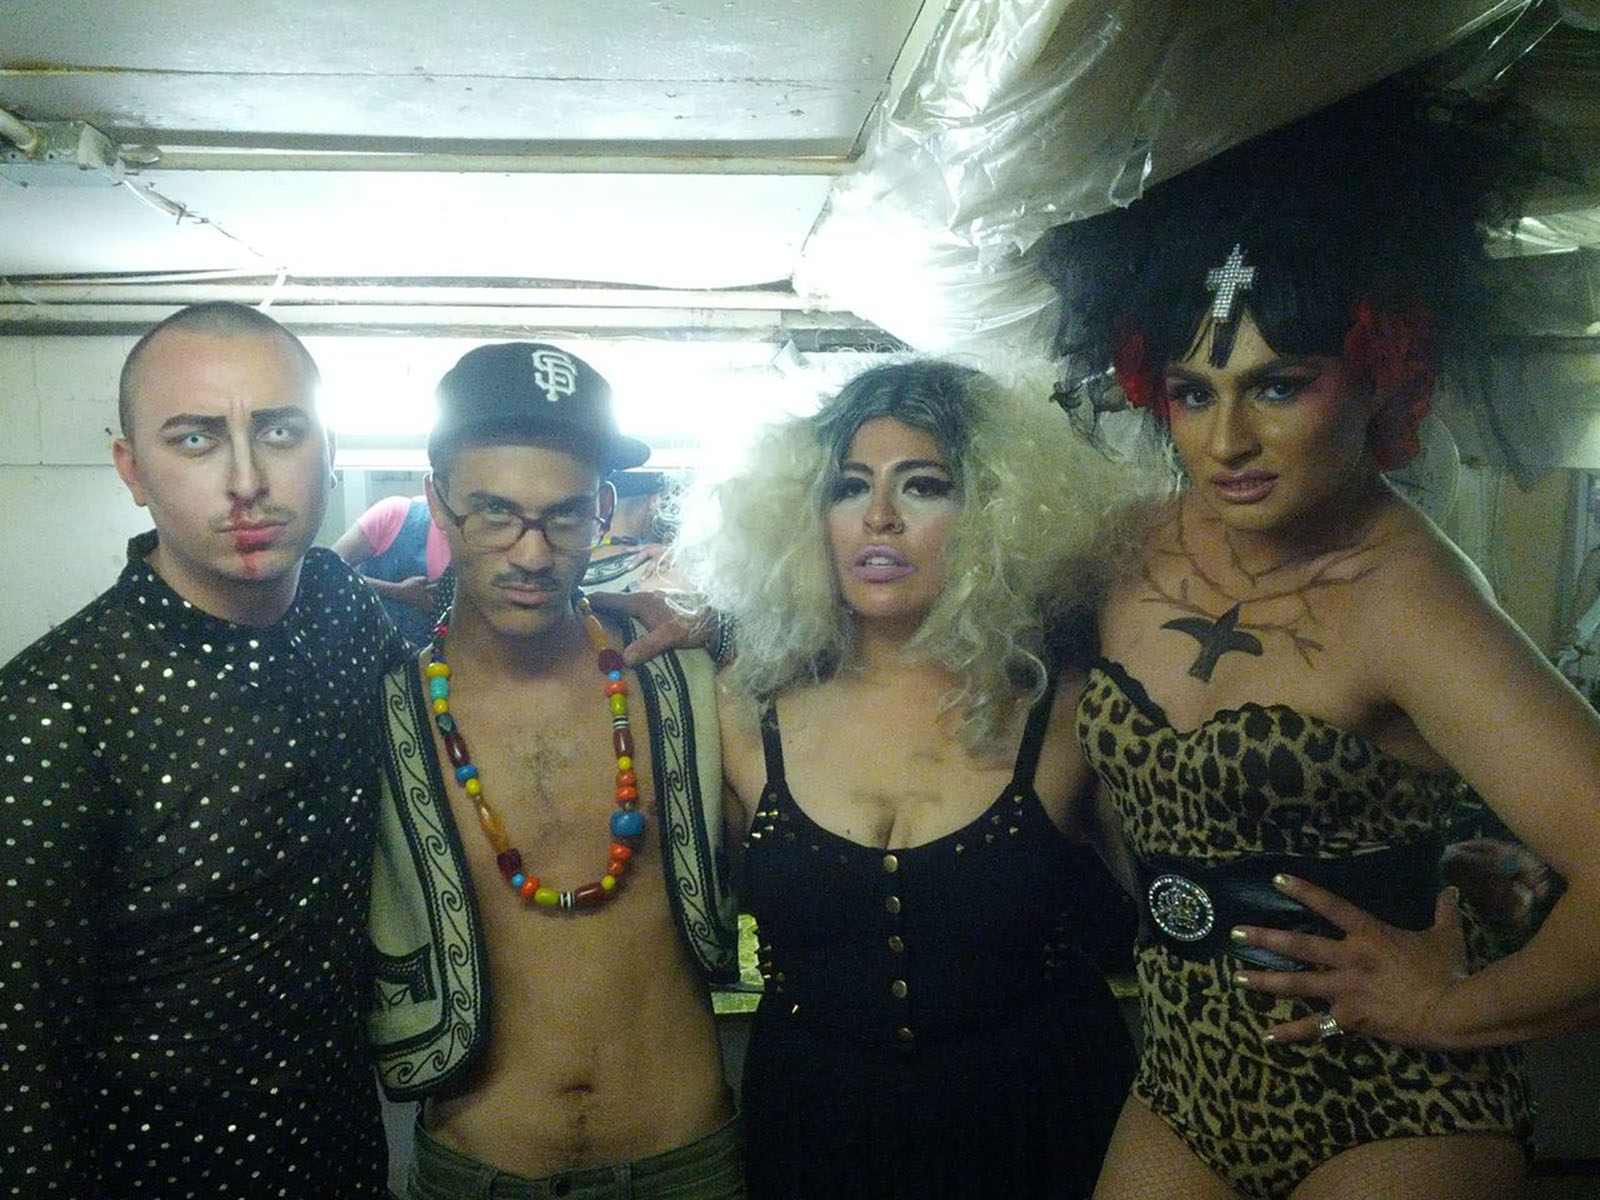 In the dressing room at Esta Noche: (left to right) Vain Hein, Tyler Holmes, San Cha of performance art group Daddies Plastik; and Persia at a fundraiser at Esta Noche May 18.